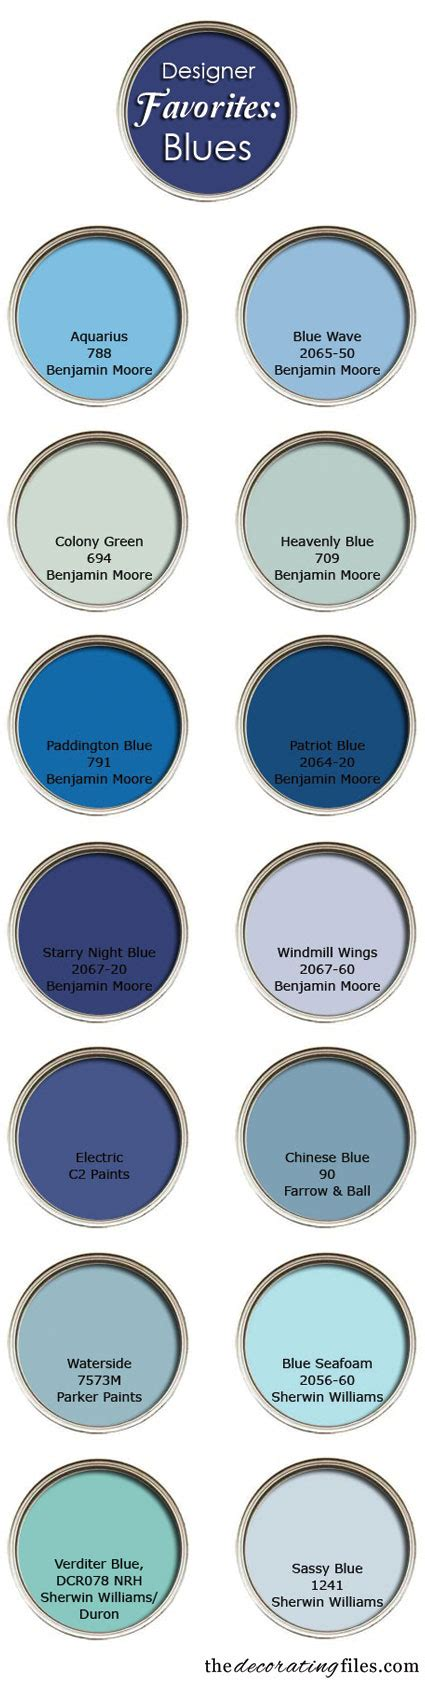 blue paint colors favorite picks from designers